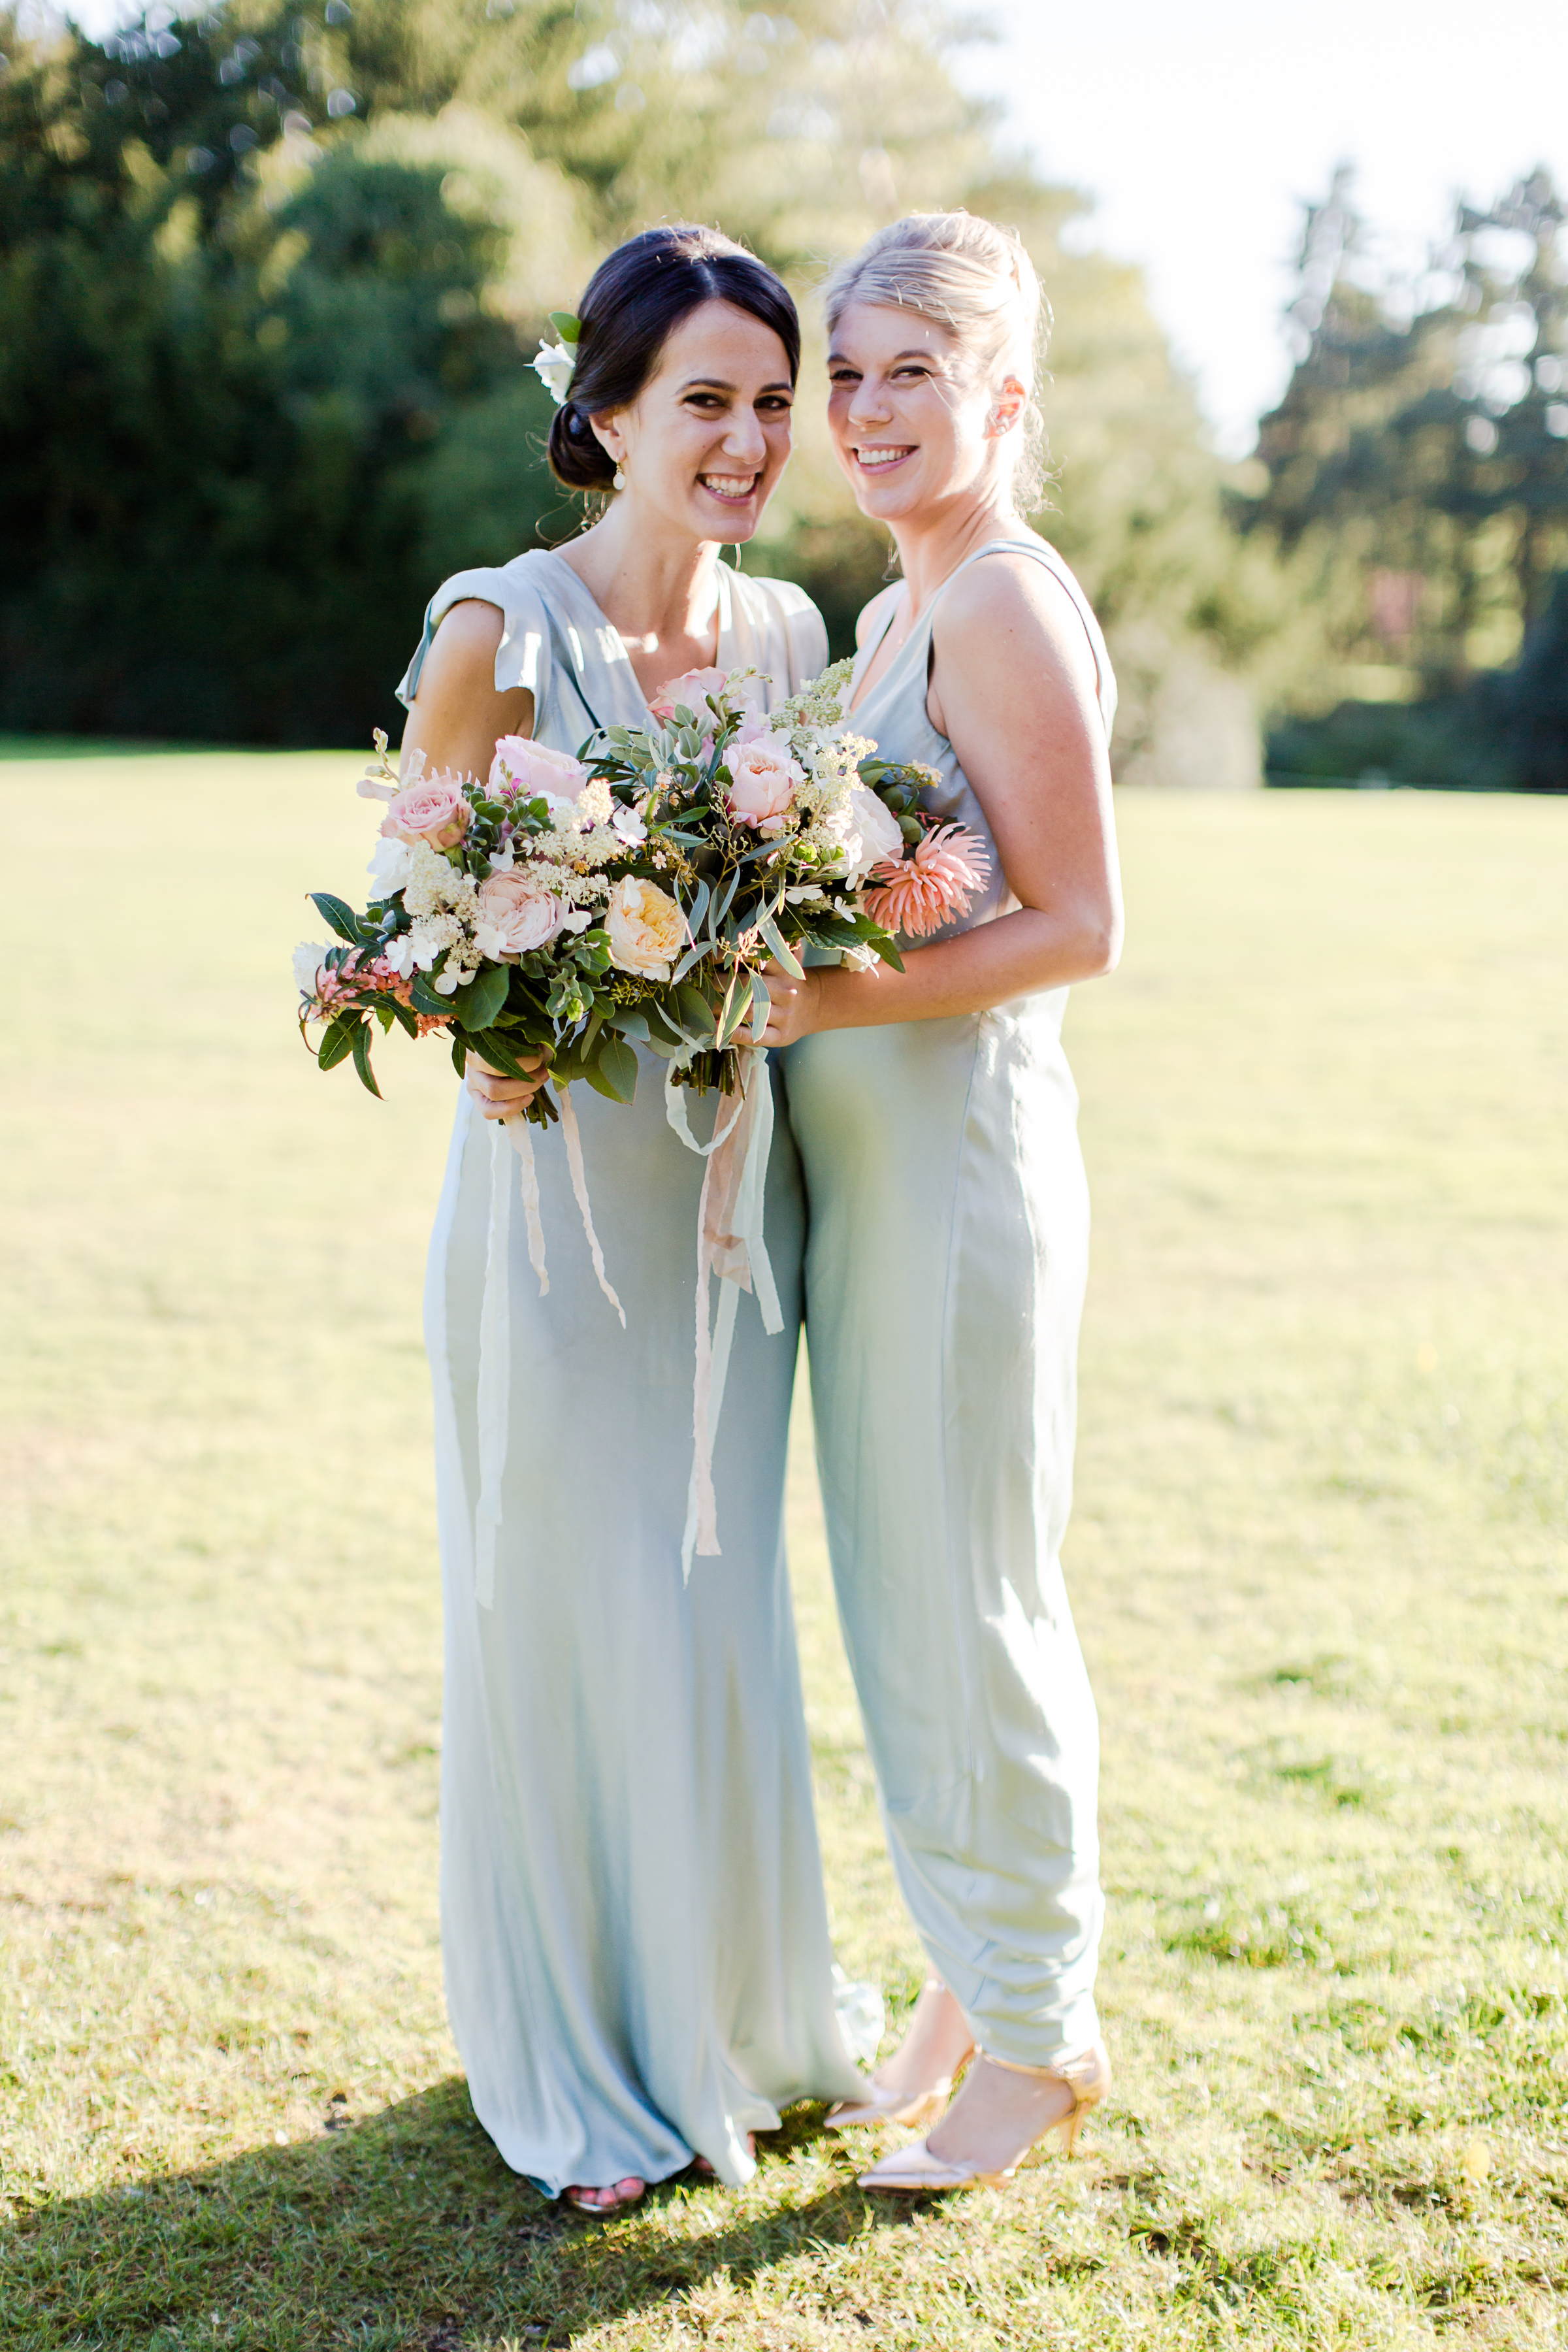 405_Eddie-Judd-photography-LeylaandSamWEDDING-PRINTfiles